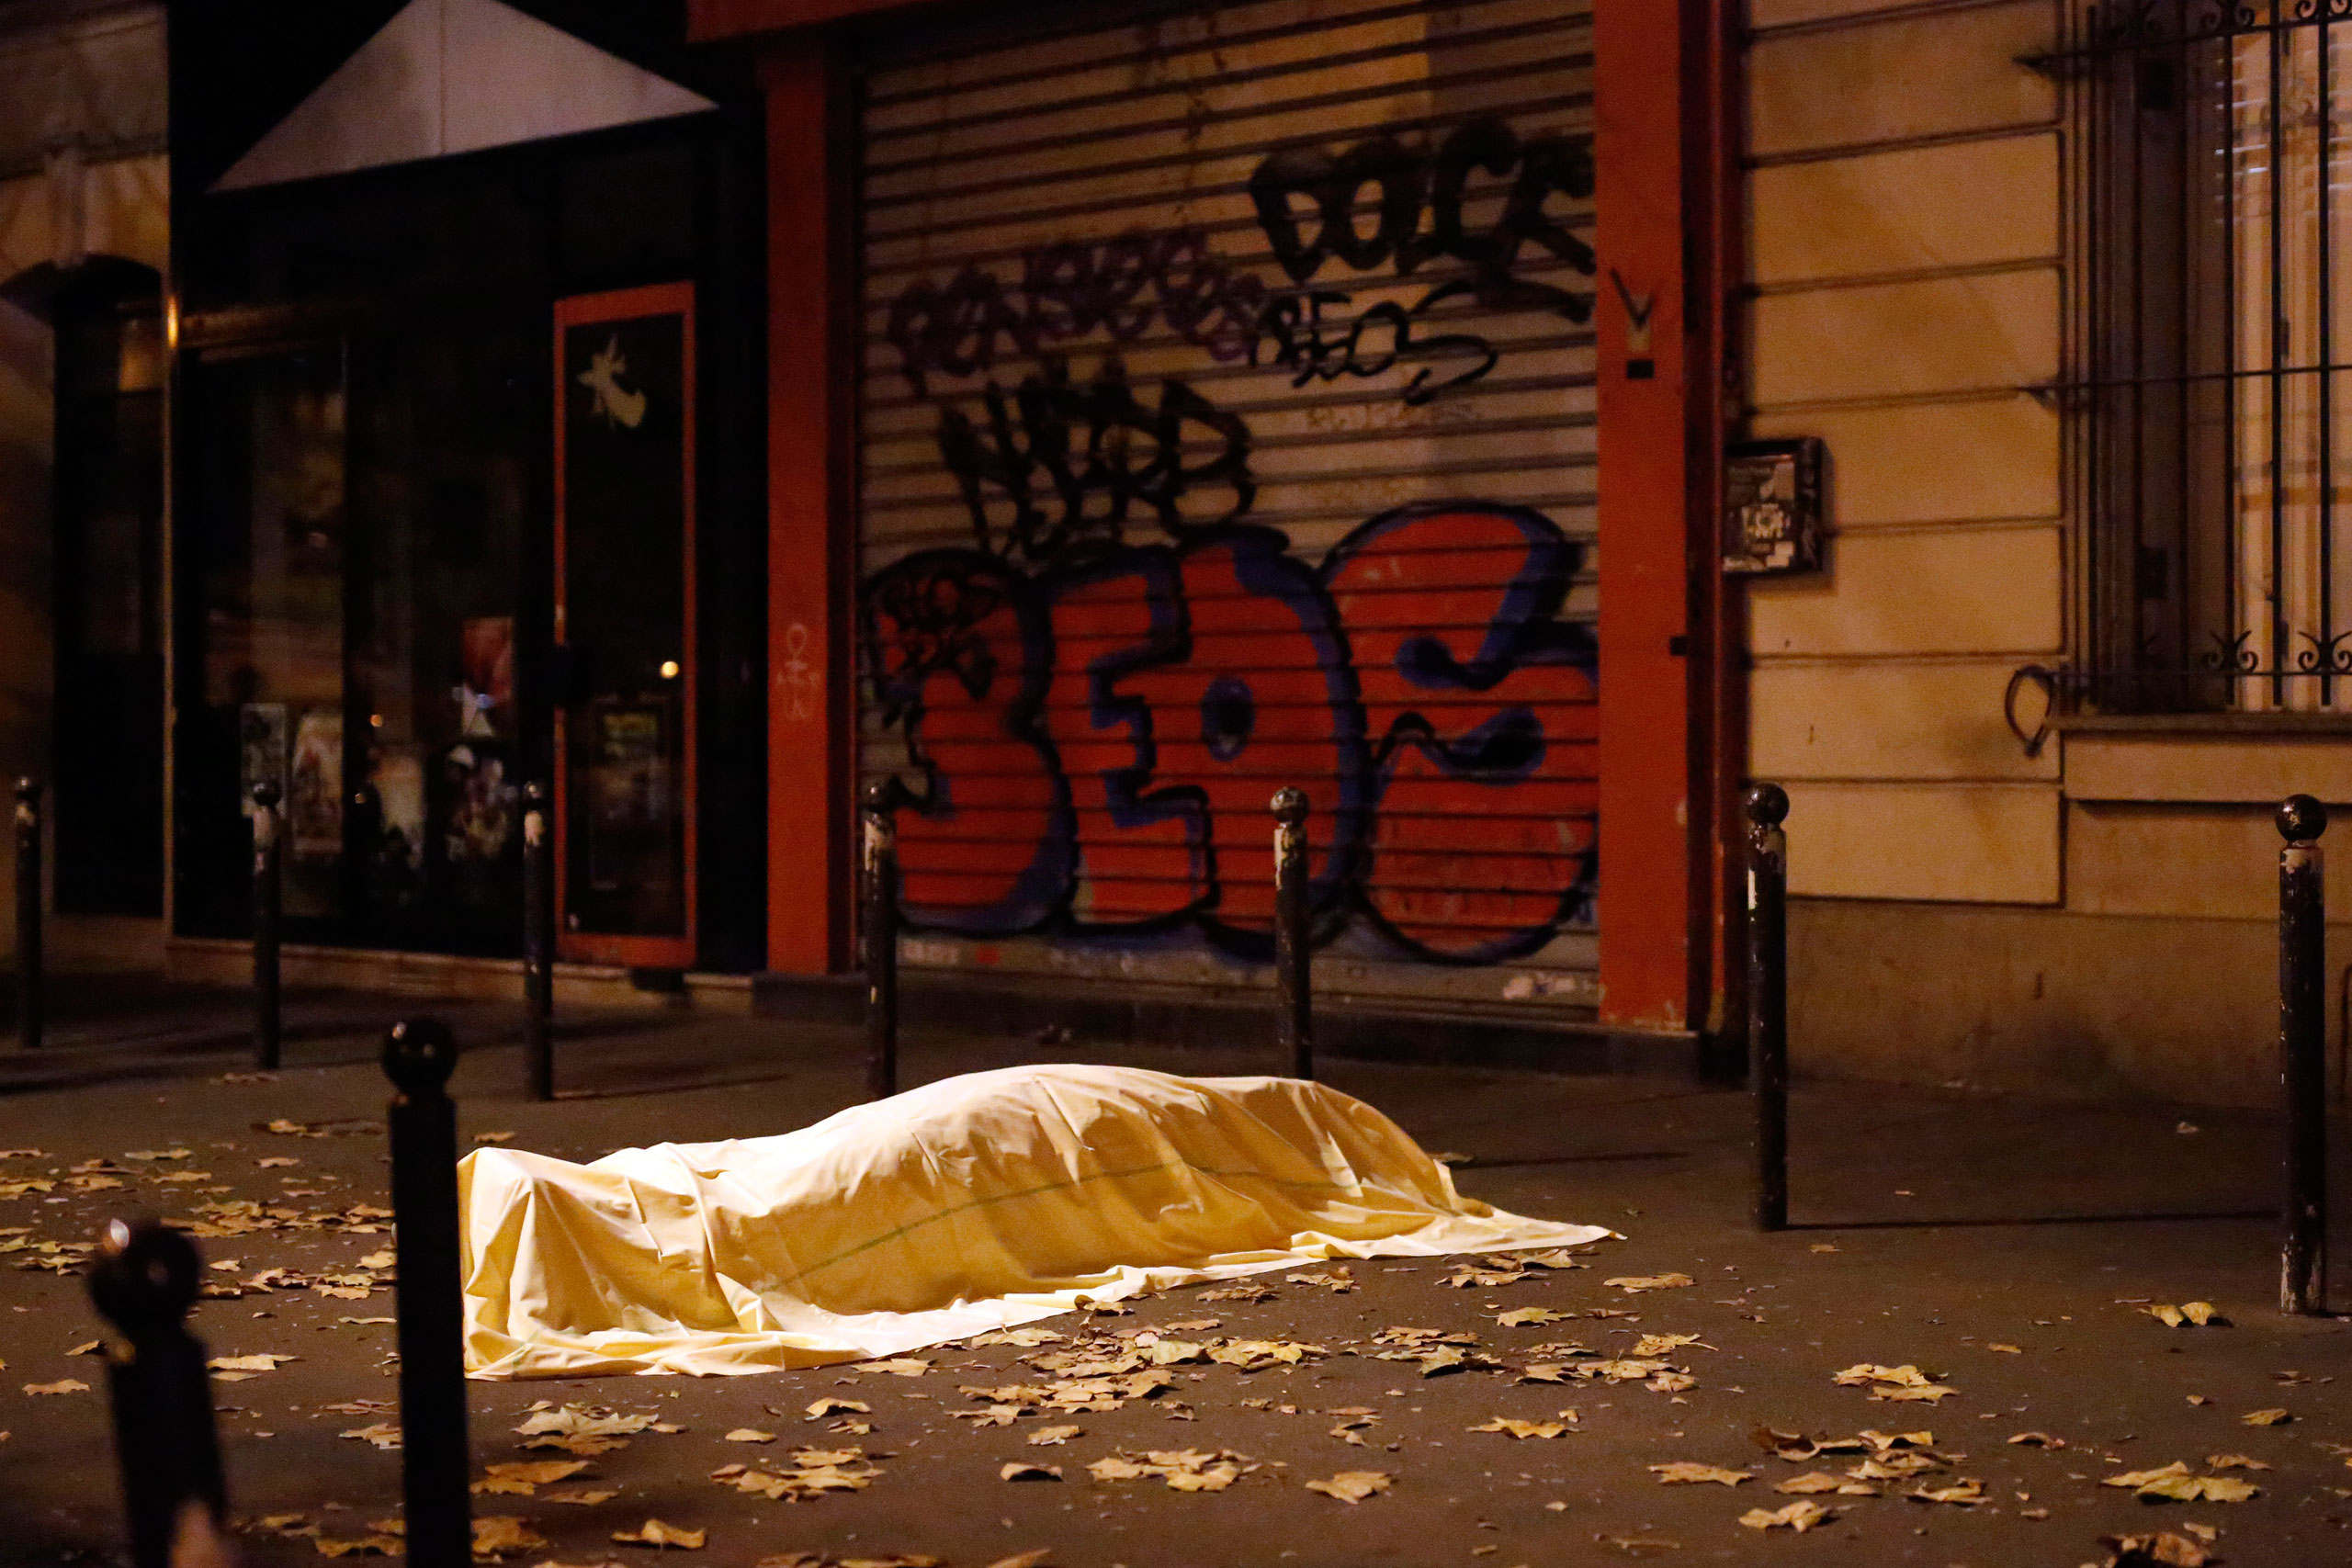 A victim under a blanket lays dead outside the Bataclan theater in Paris, France. Nov. 13, 2015.                                At least 129 people were killed in a series of shooting and explosions. French President Francois Hollande declared a state of emergency and announced that he was closing the country's borders.